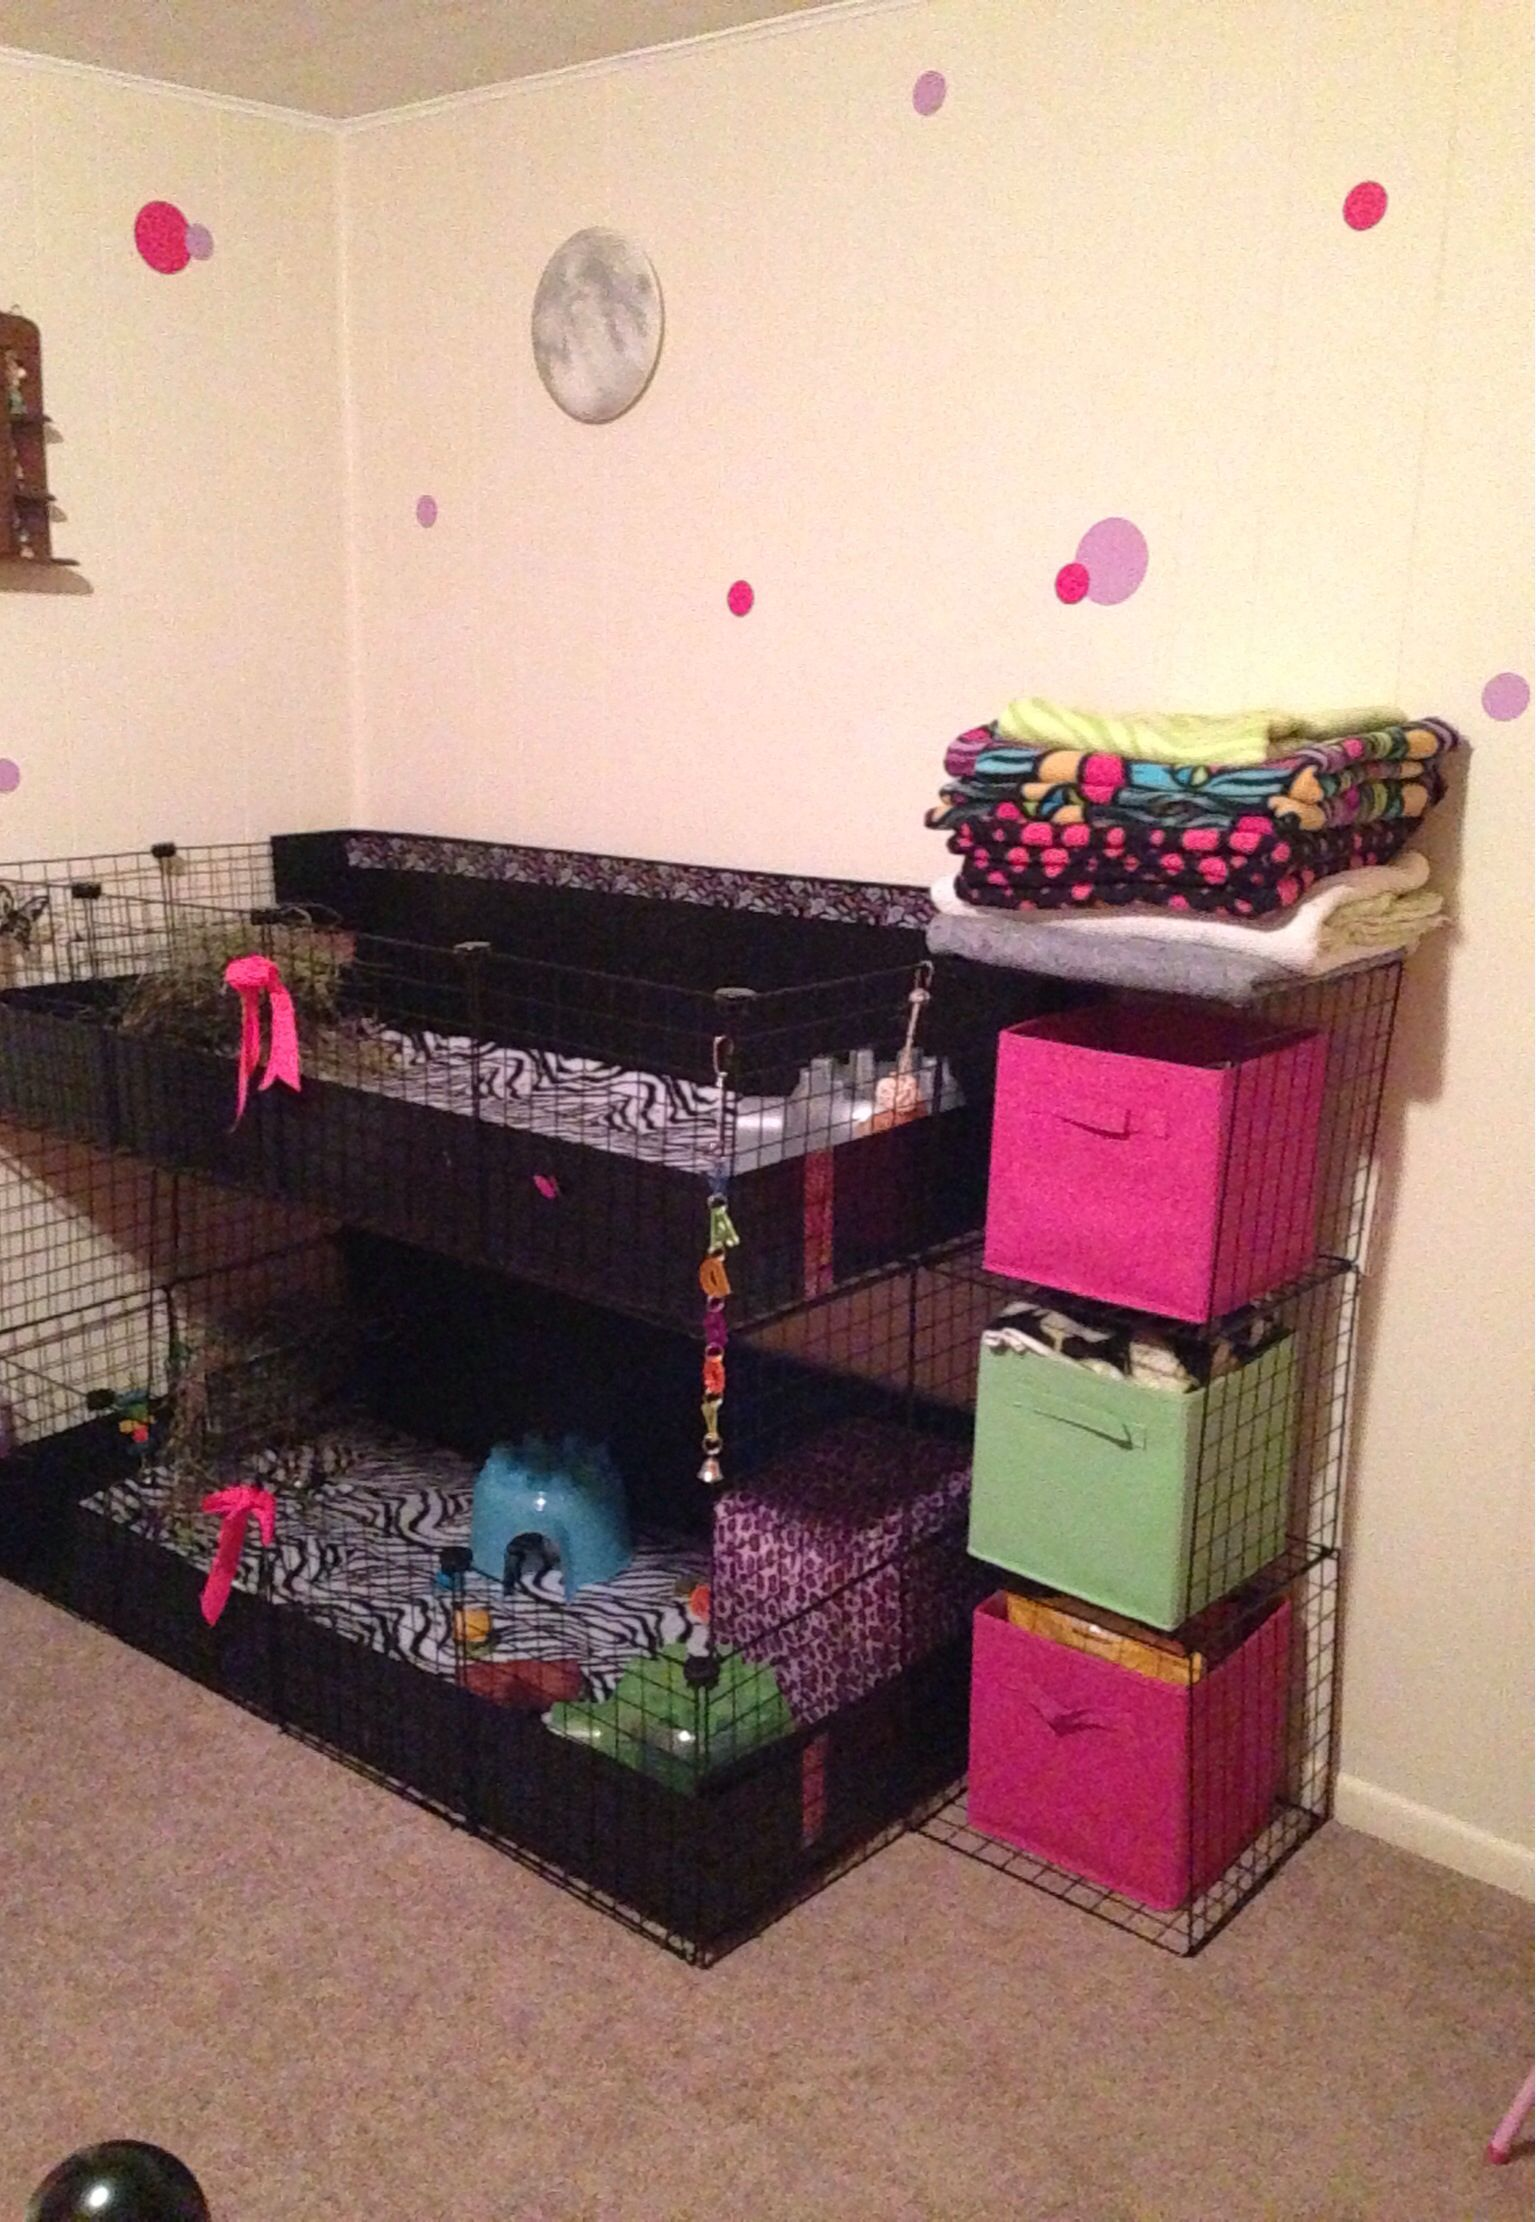 Pin On Guinea Pig Cage Ideas Cavy Diy